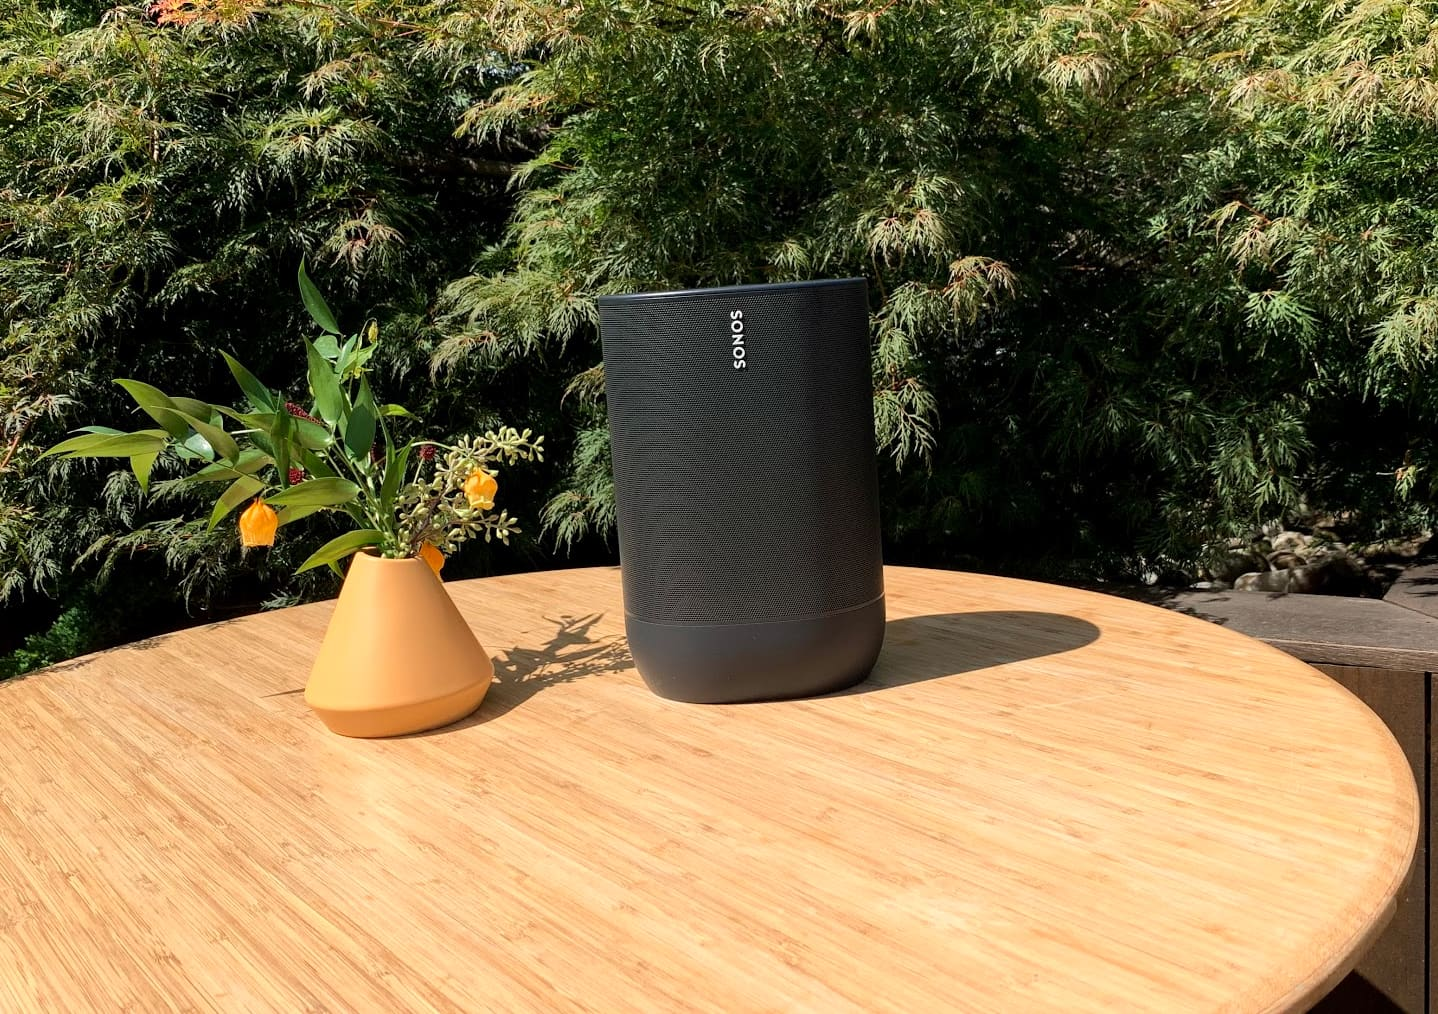 Sonos unveils its first portable speaker that goes outside and can survive in the rain